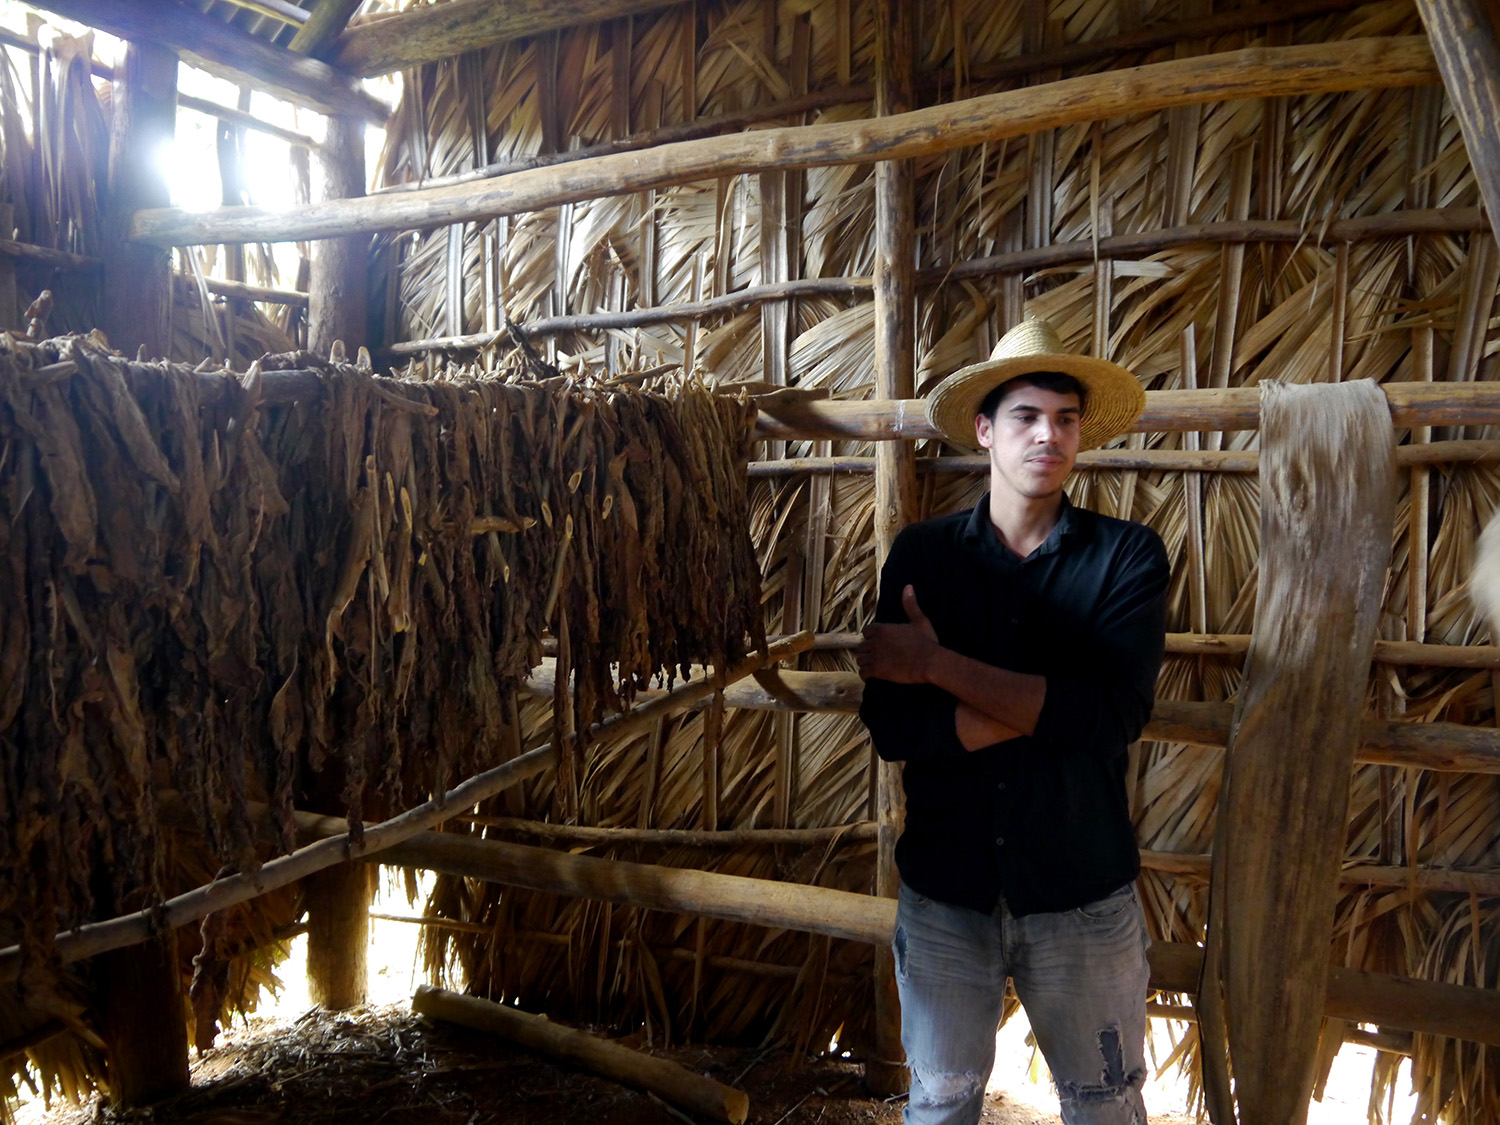 Farmer stands next to some tobacco leaves drying inside a barn.